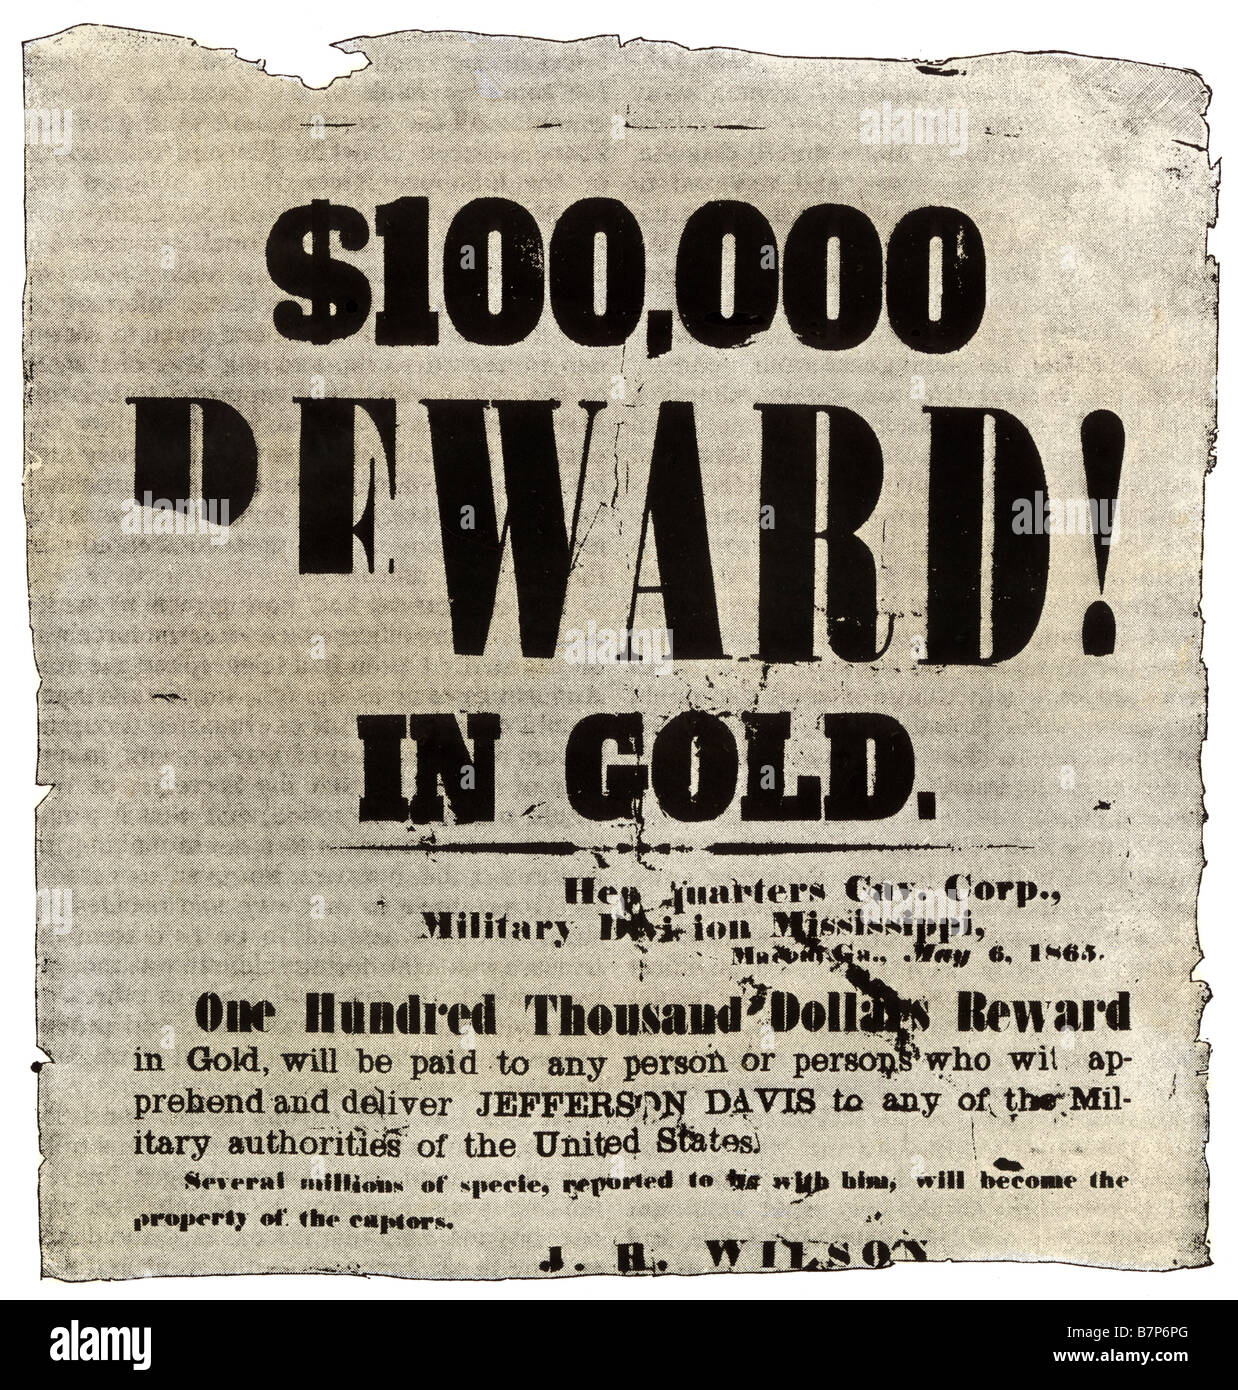 reward poster offering 100 000 in gold for the capture of jefferson